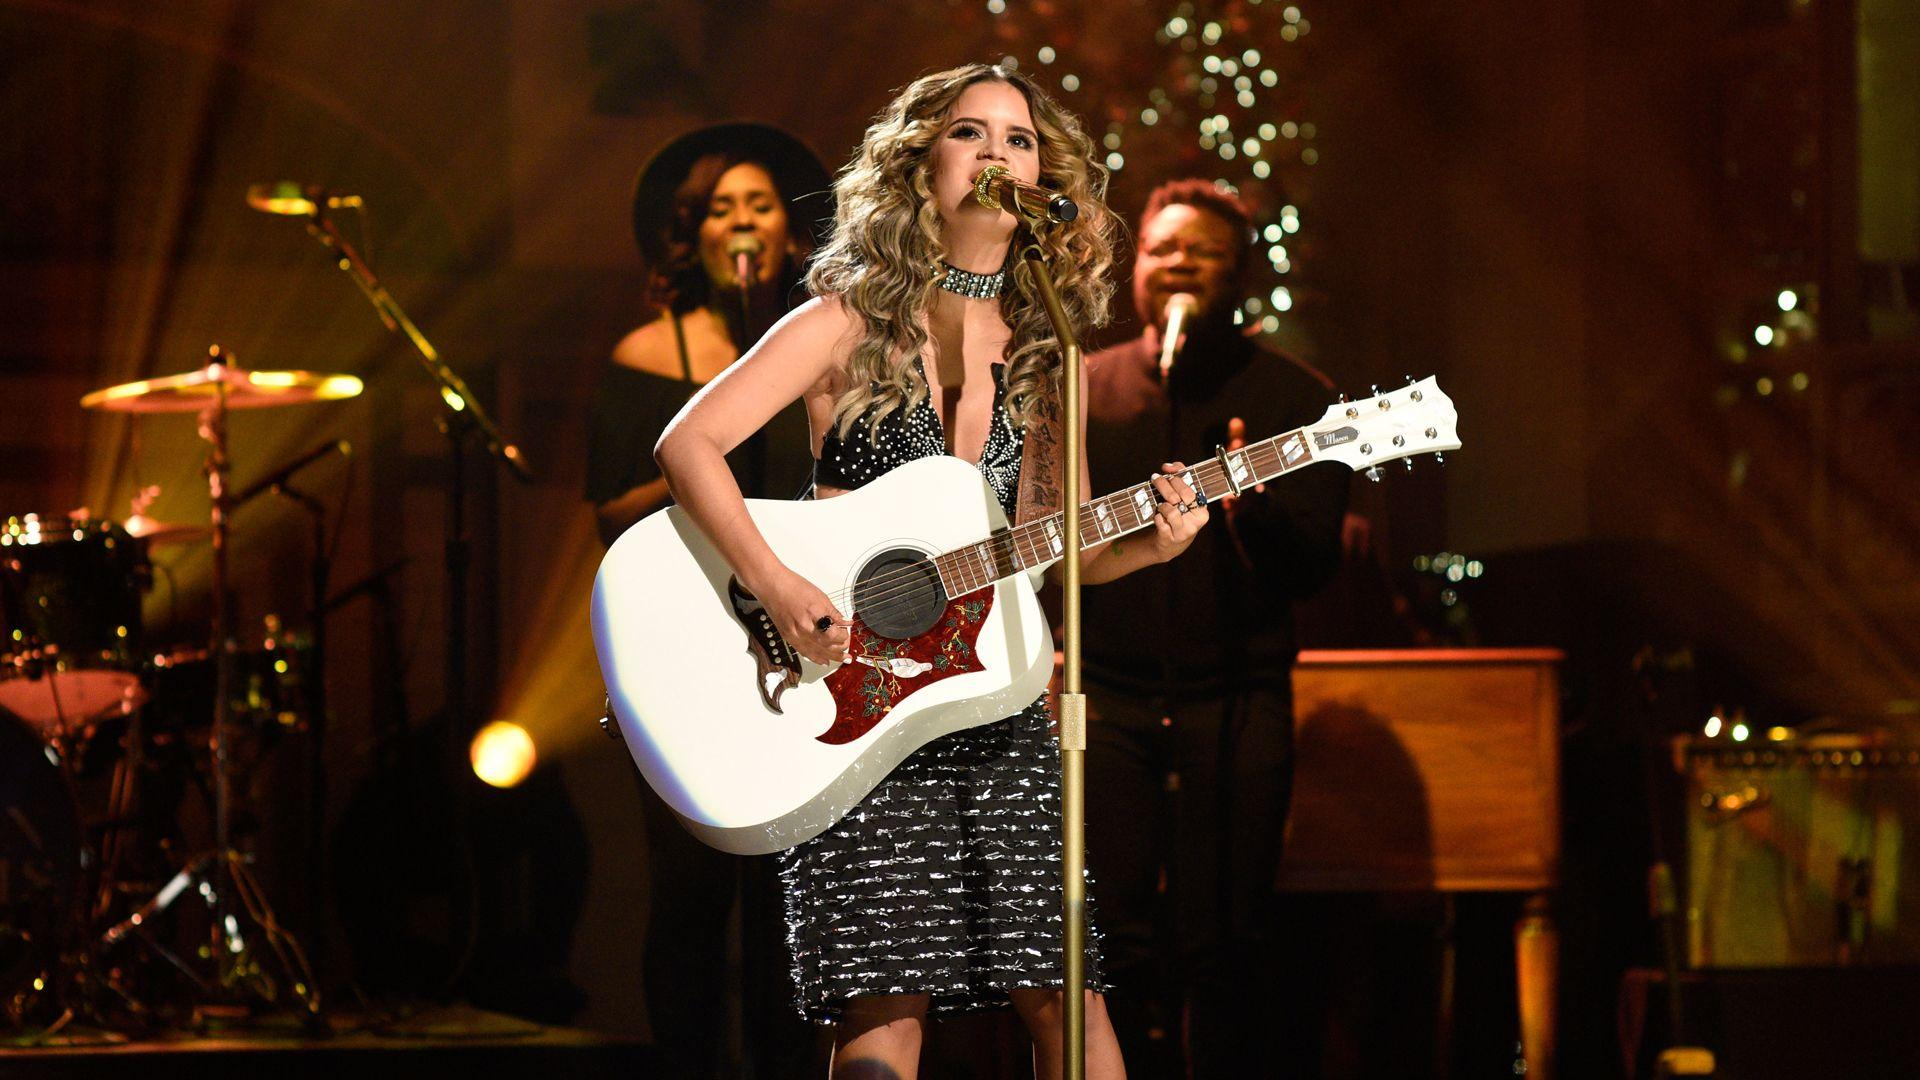 Watch Maren Morris: My Church From Saturday Night Live